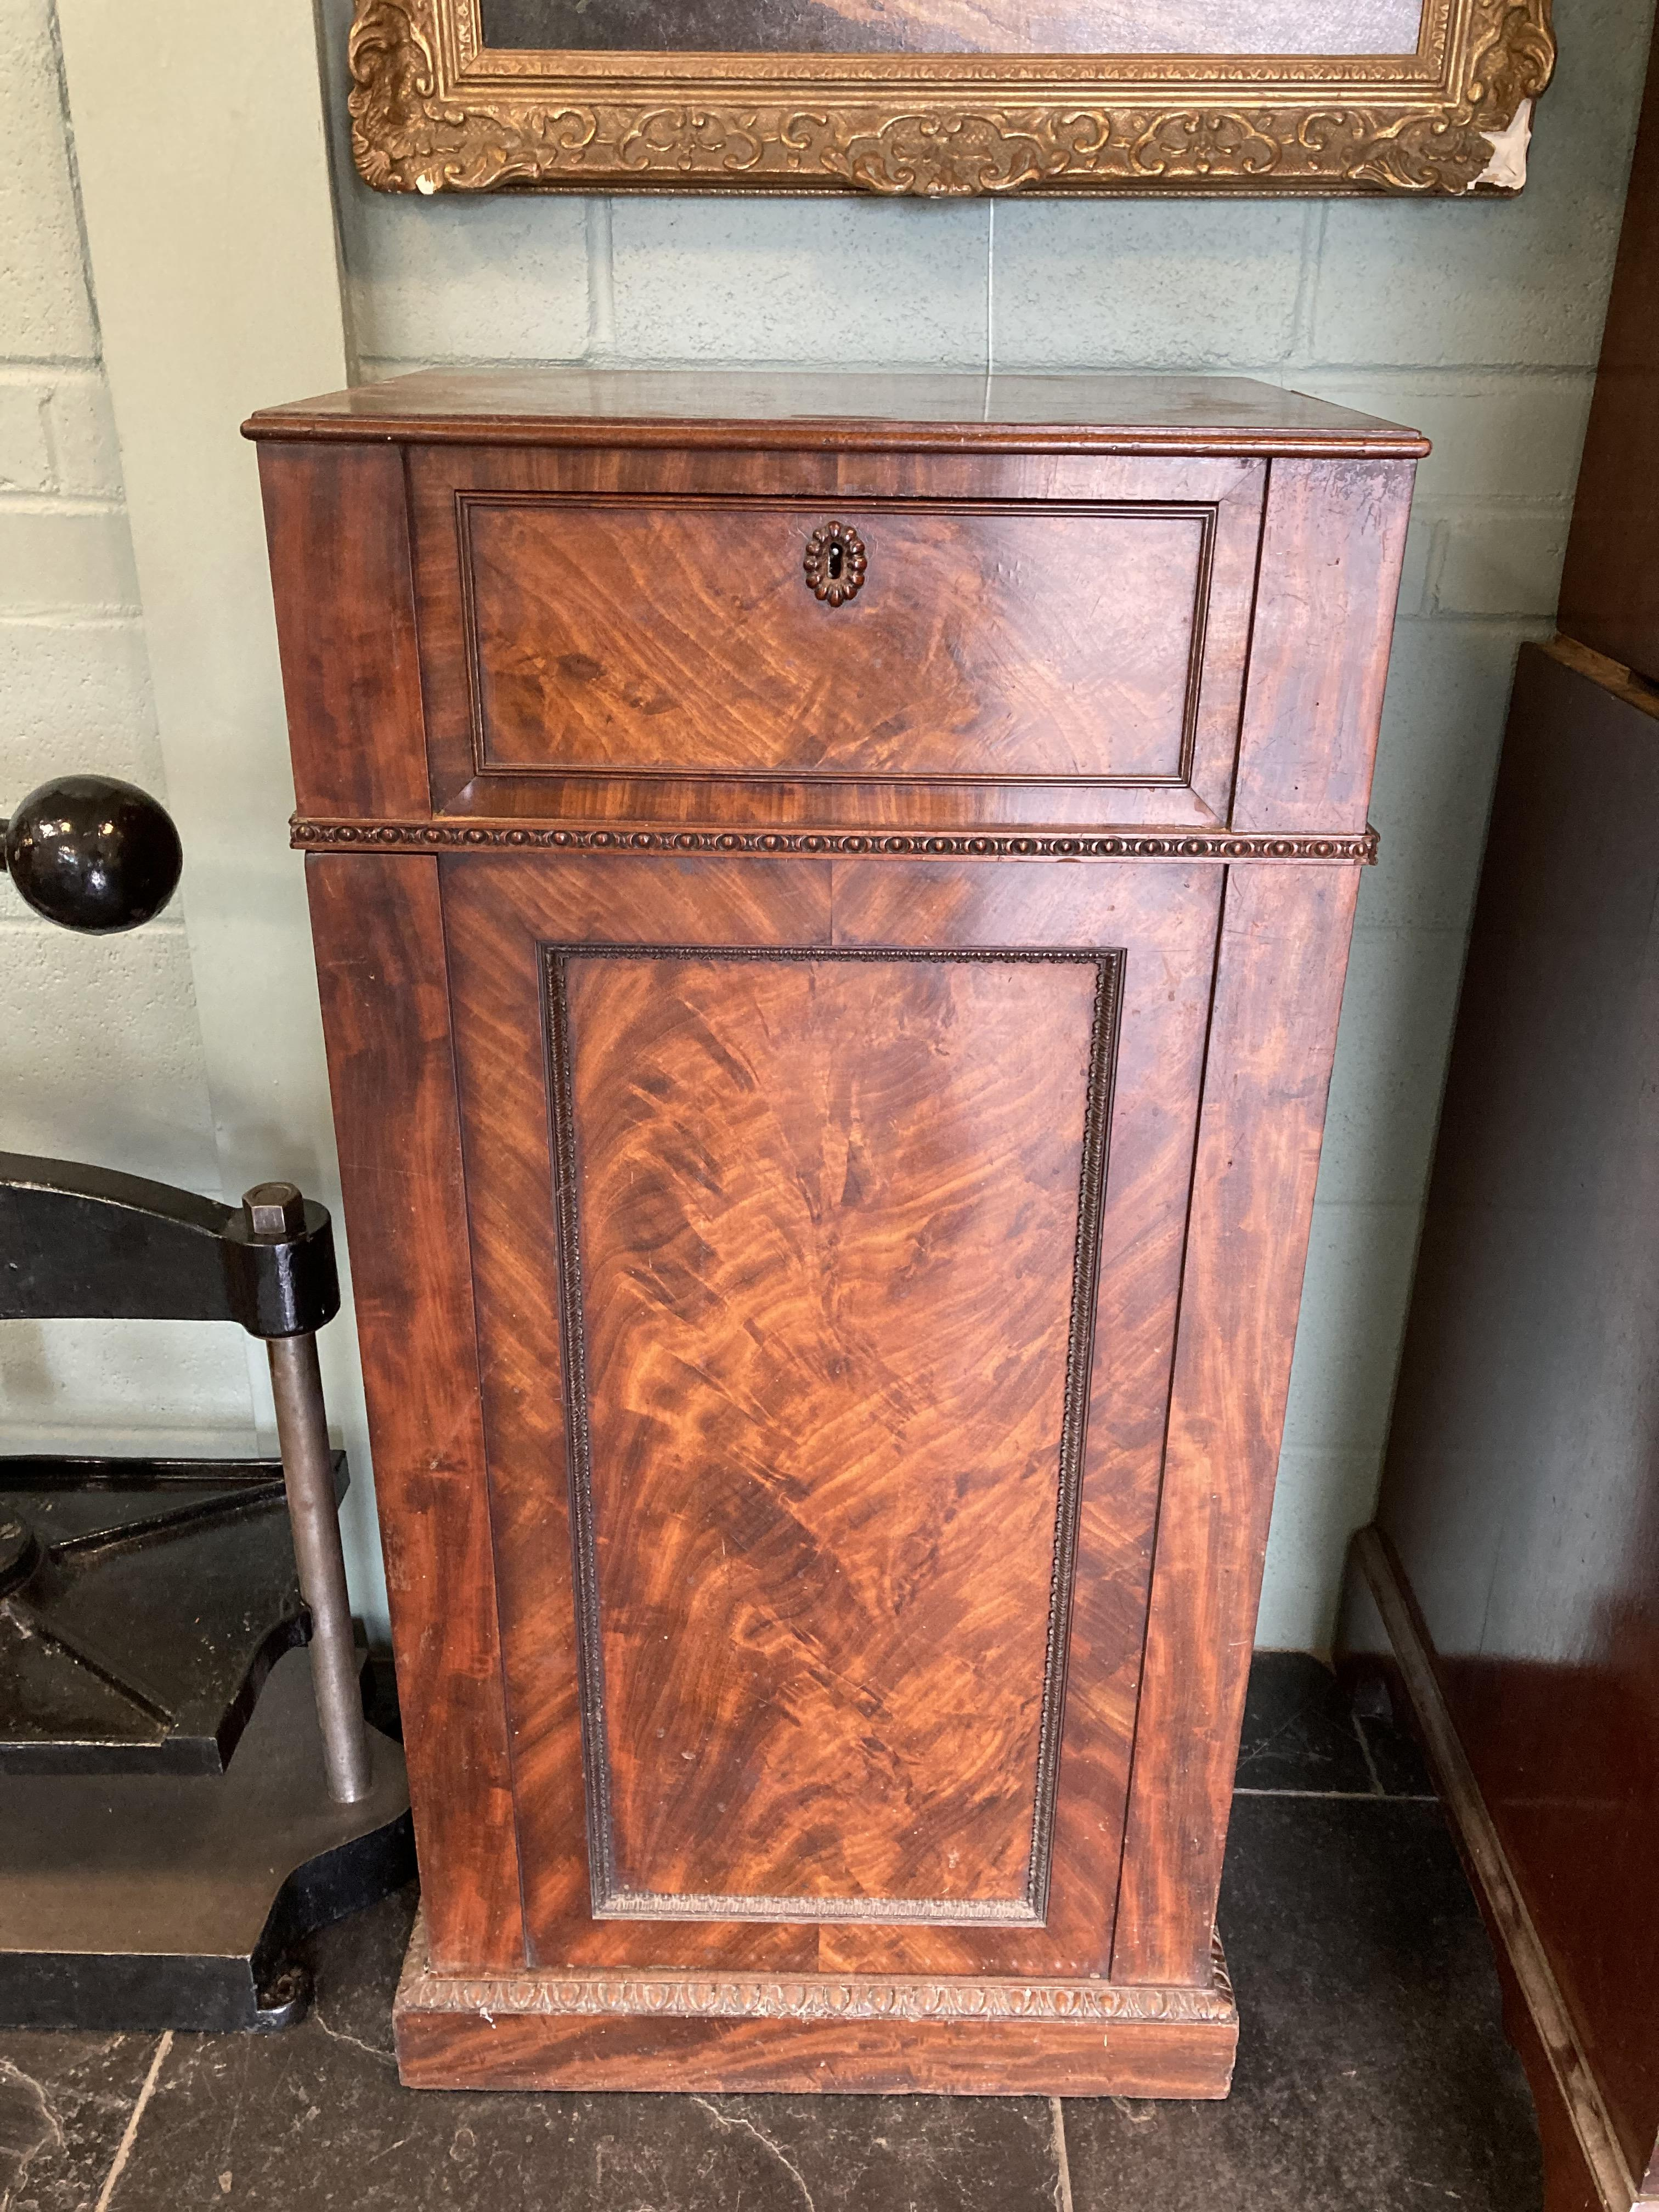 * Cabinets. Pair of William IV pedestal cabinets - Image 2 of 17